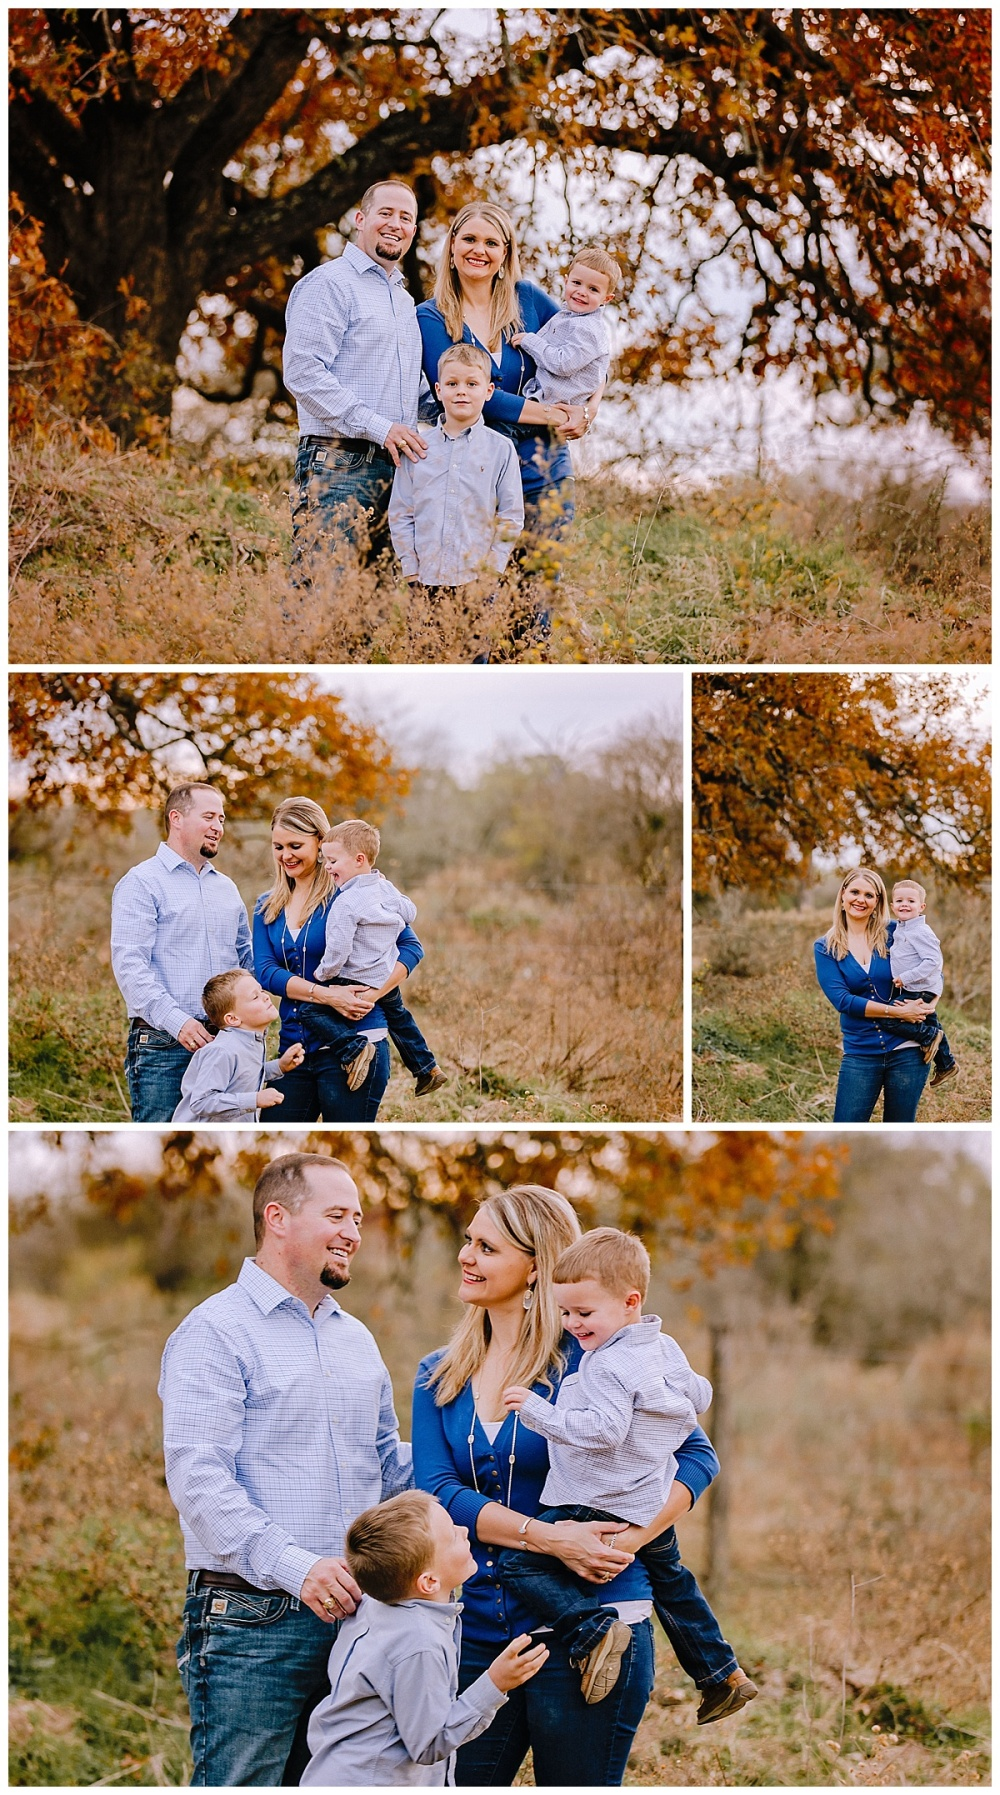 Family-Photographer-La-Vernia-Texas-LV-C-of-C-Hall-Fall-Photos-Brothers-Carly-Barton-Photography_0005.jpg